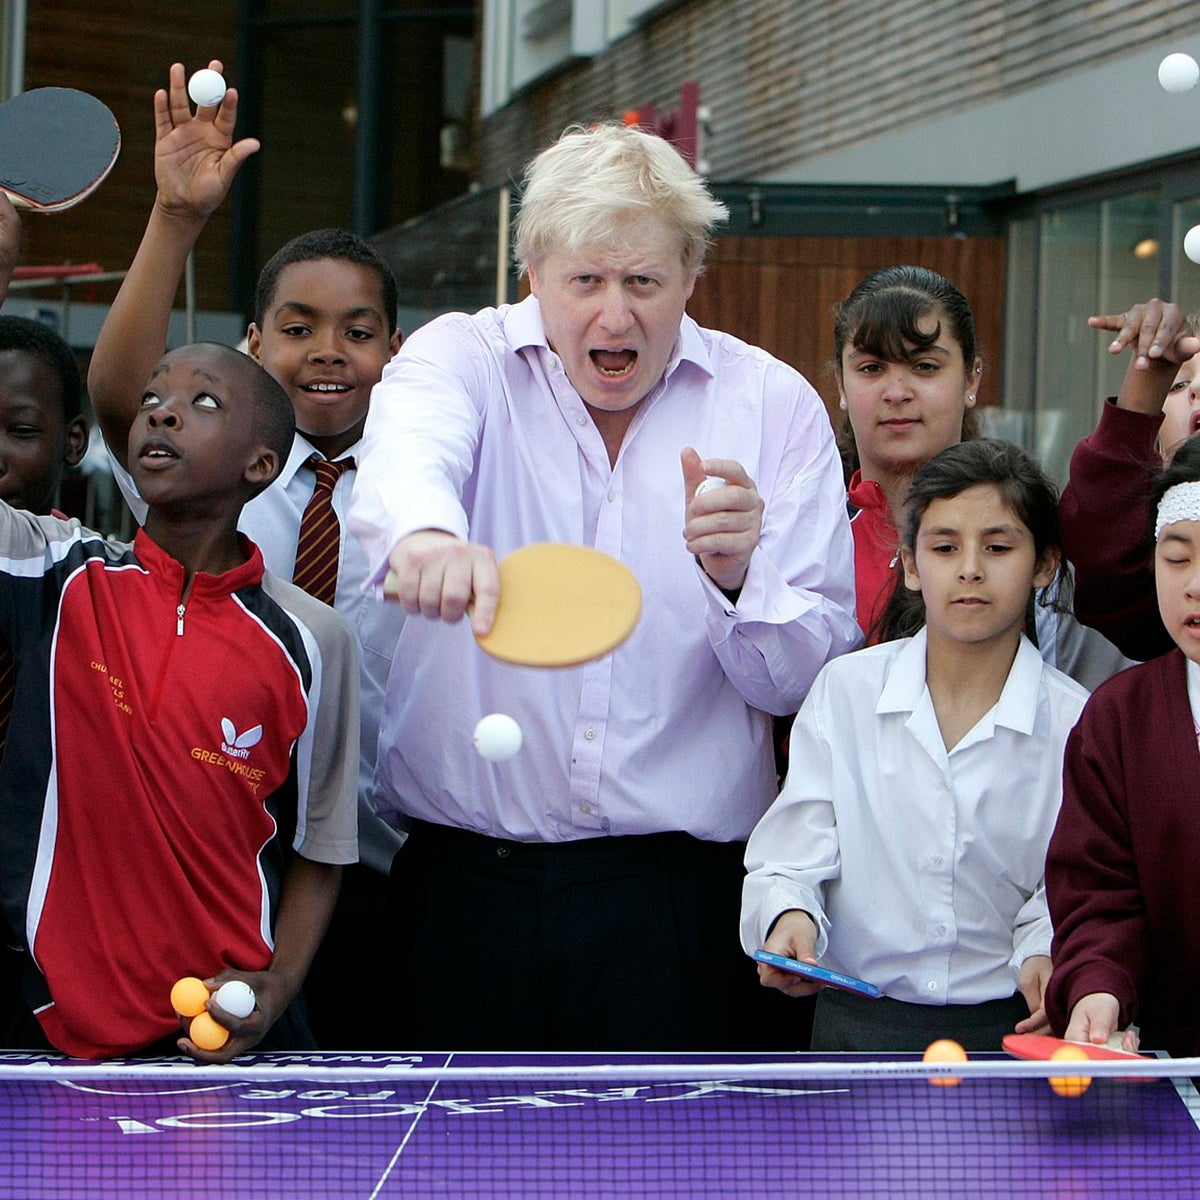 Boris Johnson plays a game of table tennis with pupils in London, U.K., June 25, 2010.